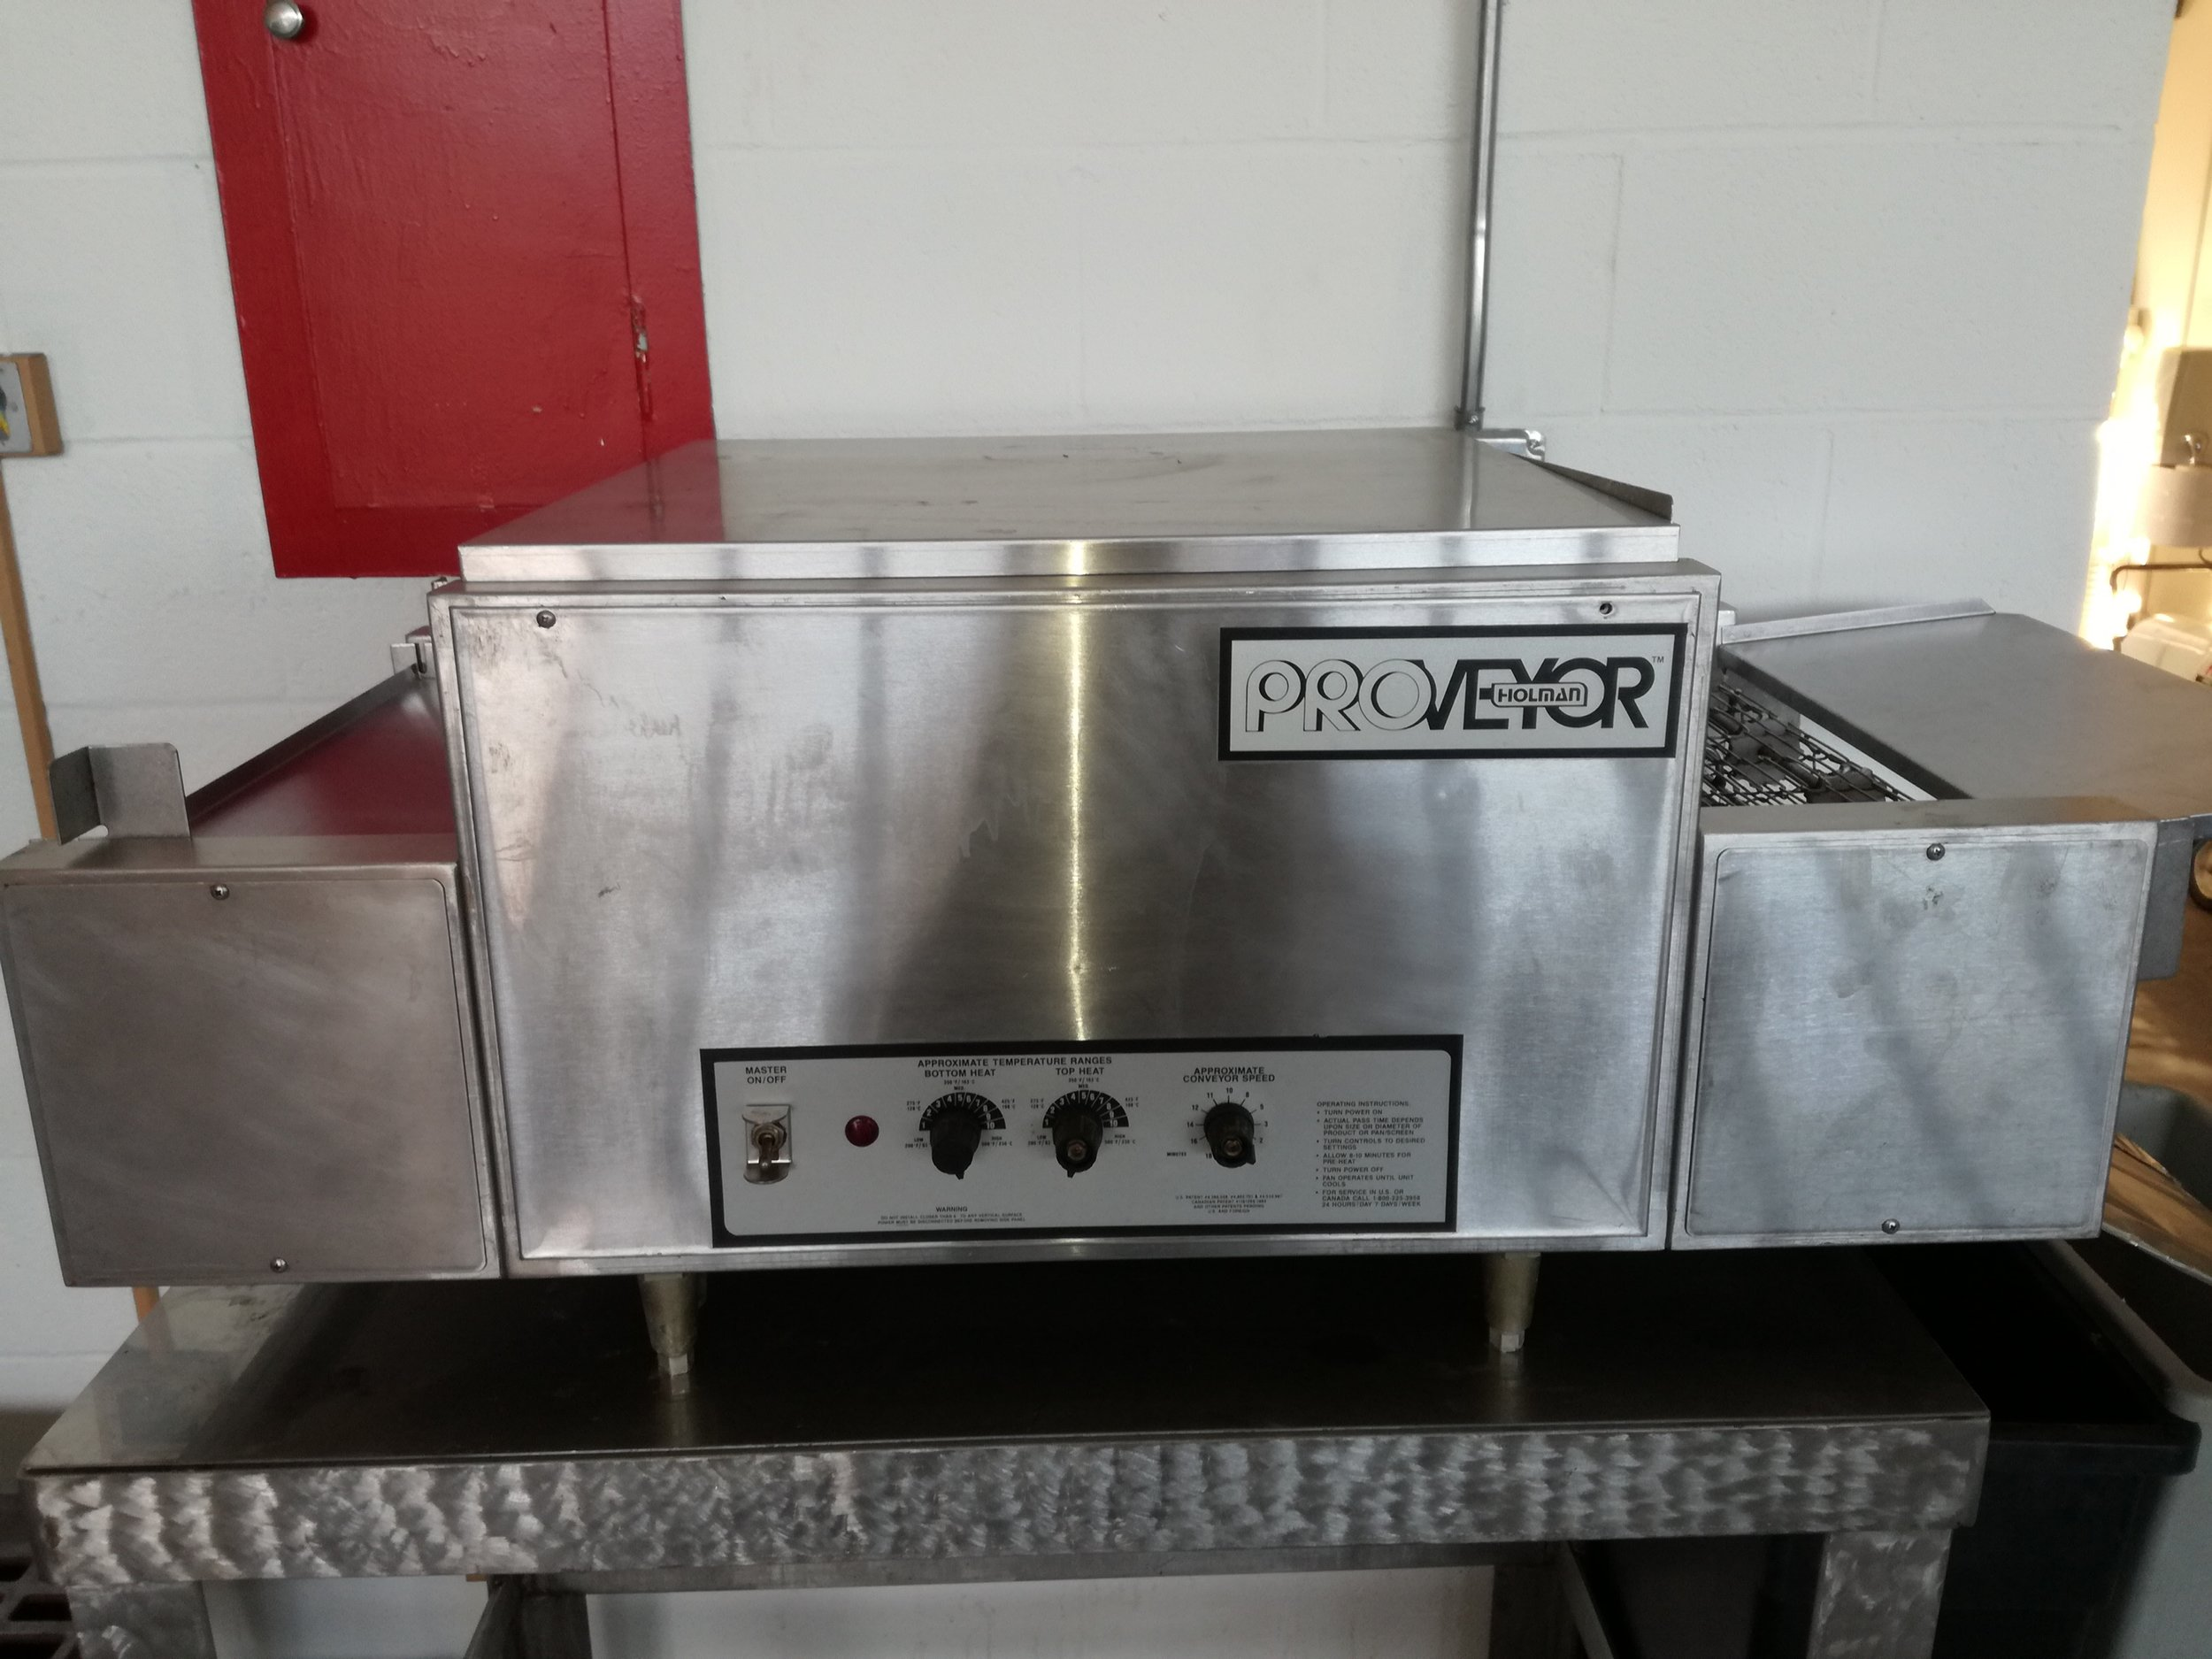 Holman Commercial PIZZA Conveyor Oven $675 - Excellent shape countertop pizza oven. These ovens are designed to cook a variety of menu items such as fresh dough pizza, blanched pizza, subs, cookies, fish and more quickly and easily while conserving cooking space. * Quartz Infrared Heaters provide faster, more consistent heating than traditional heating elements.* Dual Elements are located above and below conveyor belt allowing precise even heating of products.* Forced convection increases productivity by circulating preheated air into the cooking chamber.* Conveyor belt speed control and top and bottom heat control enables different menu items to be baked on the same oven providing superior flexibility.* Ovens can be stacked one, two or three high with our stacking spacer to conserve cooking space.*Production: 10-12 16